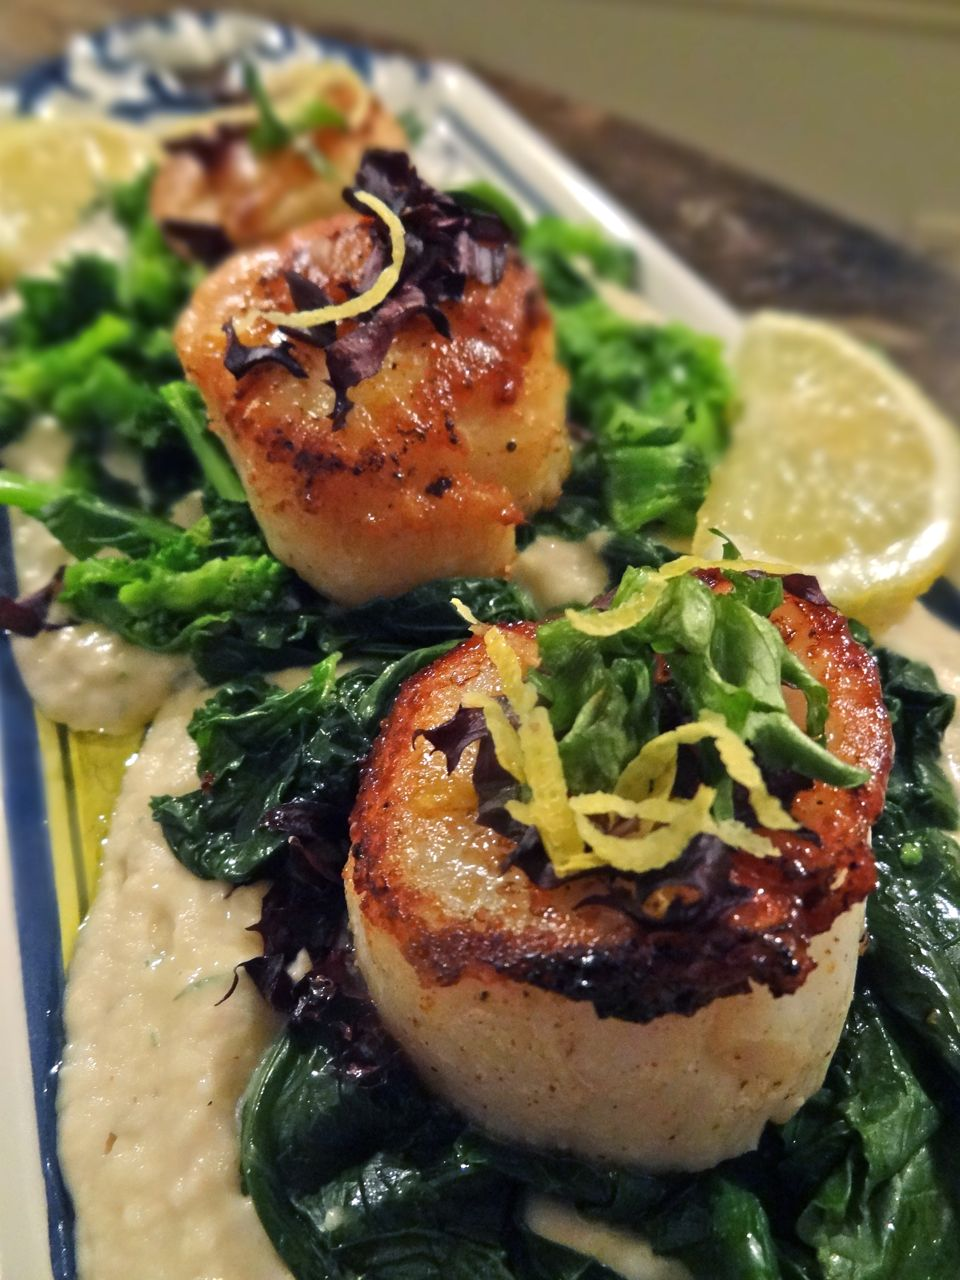 ... seared sea scallops pan seared scallops served pan seared scallops